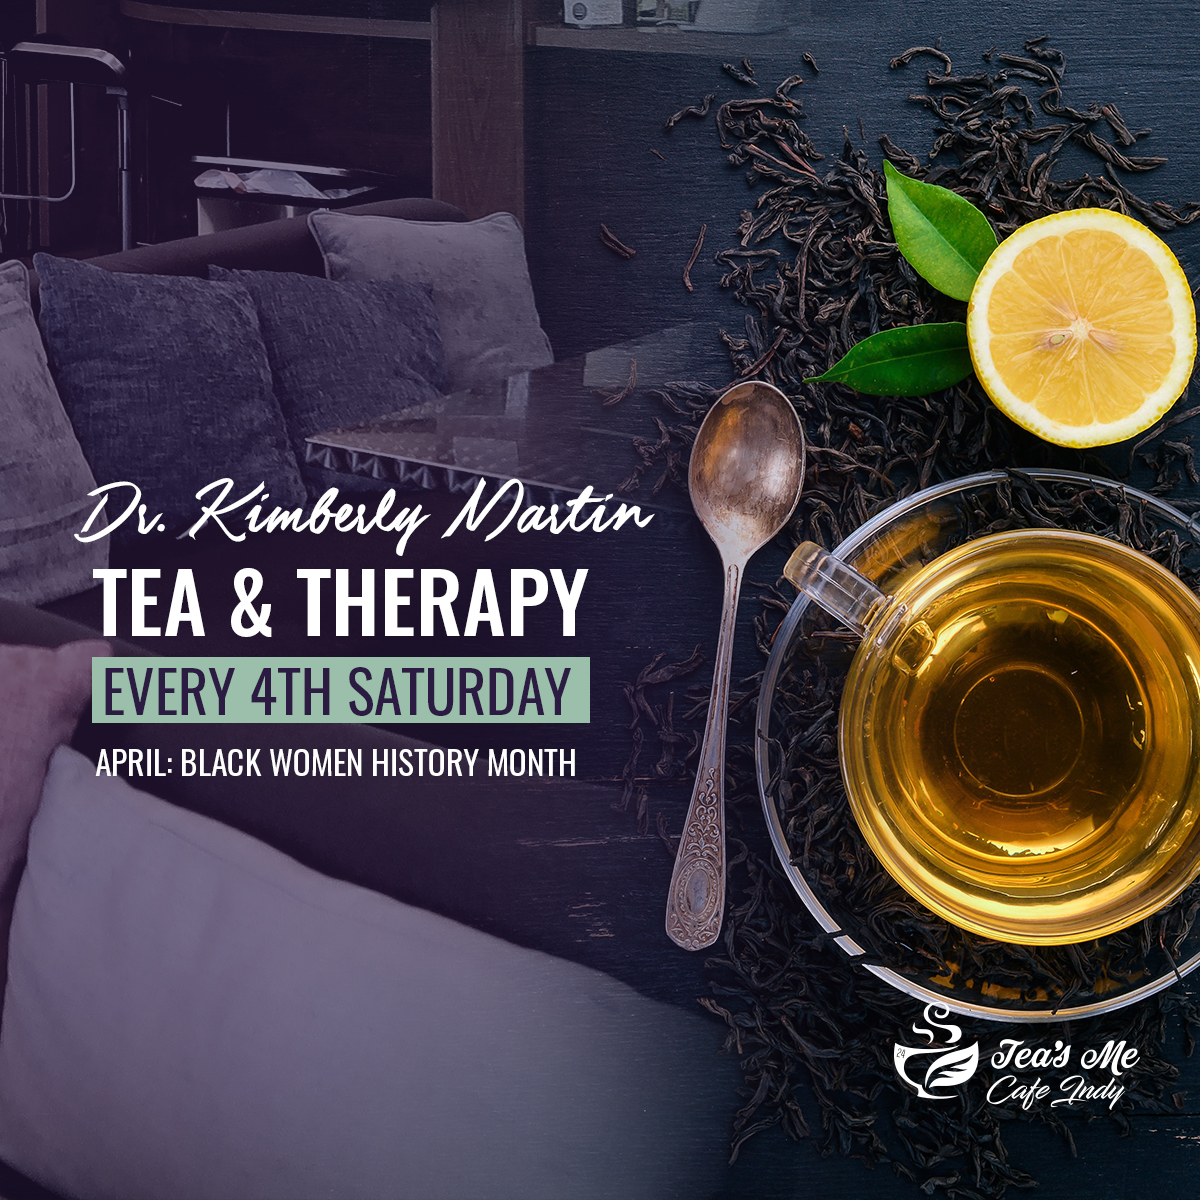 Tea and Therapy